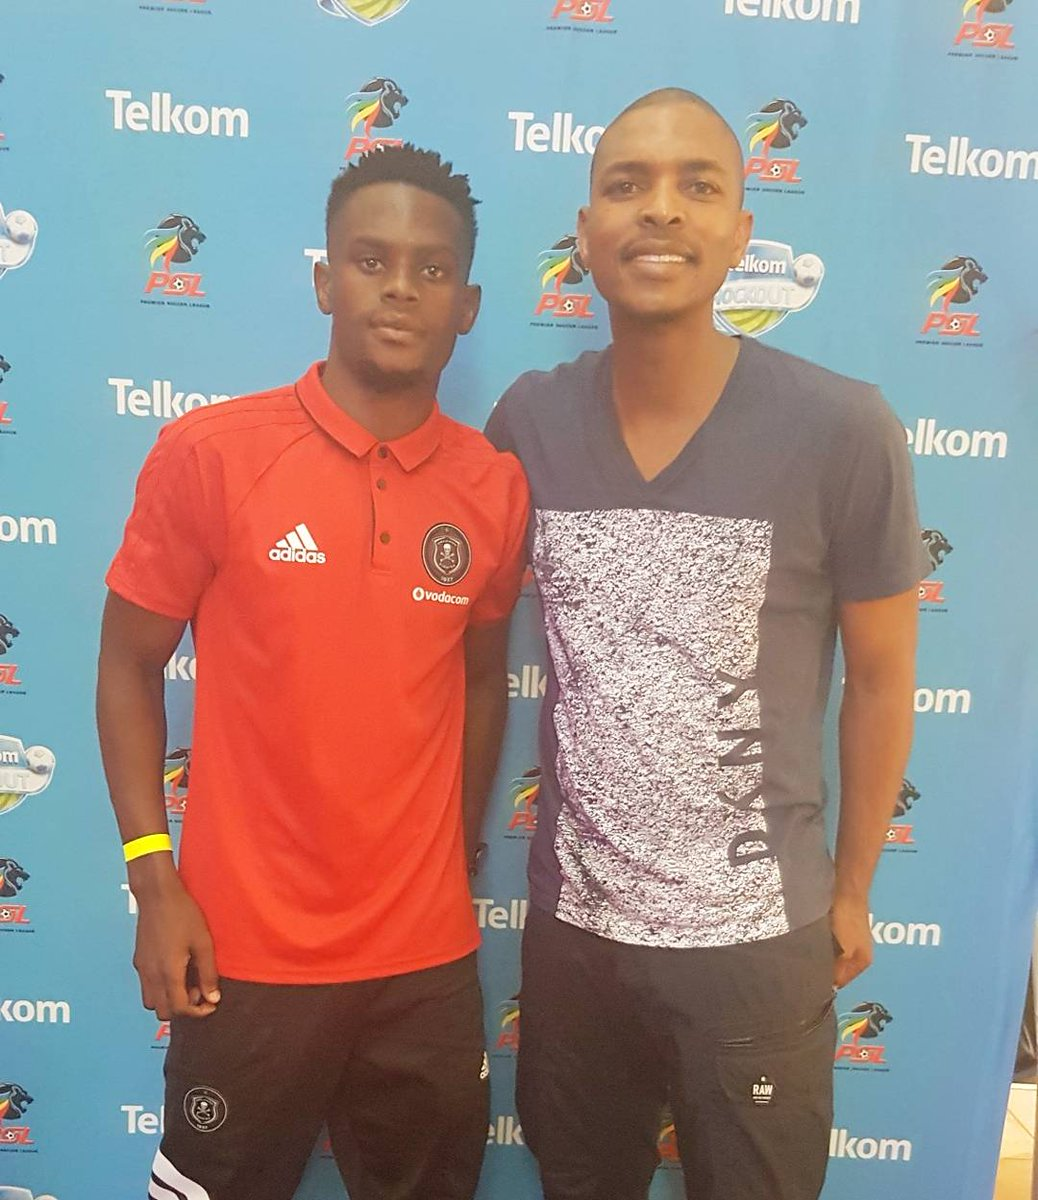 Today @TelkomKnockout draw, i spoke to some of the players. The fixtures are interesting, which one caught your attention? #TKO2017 #TKO <br>http://pic.twitter.com/R6jpbFMKl5